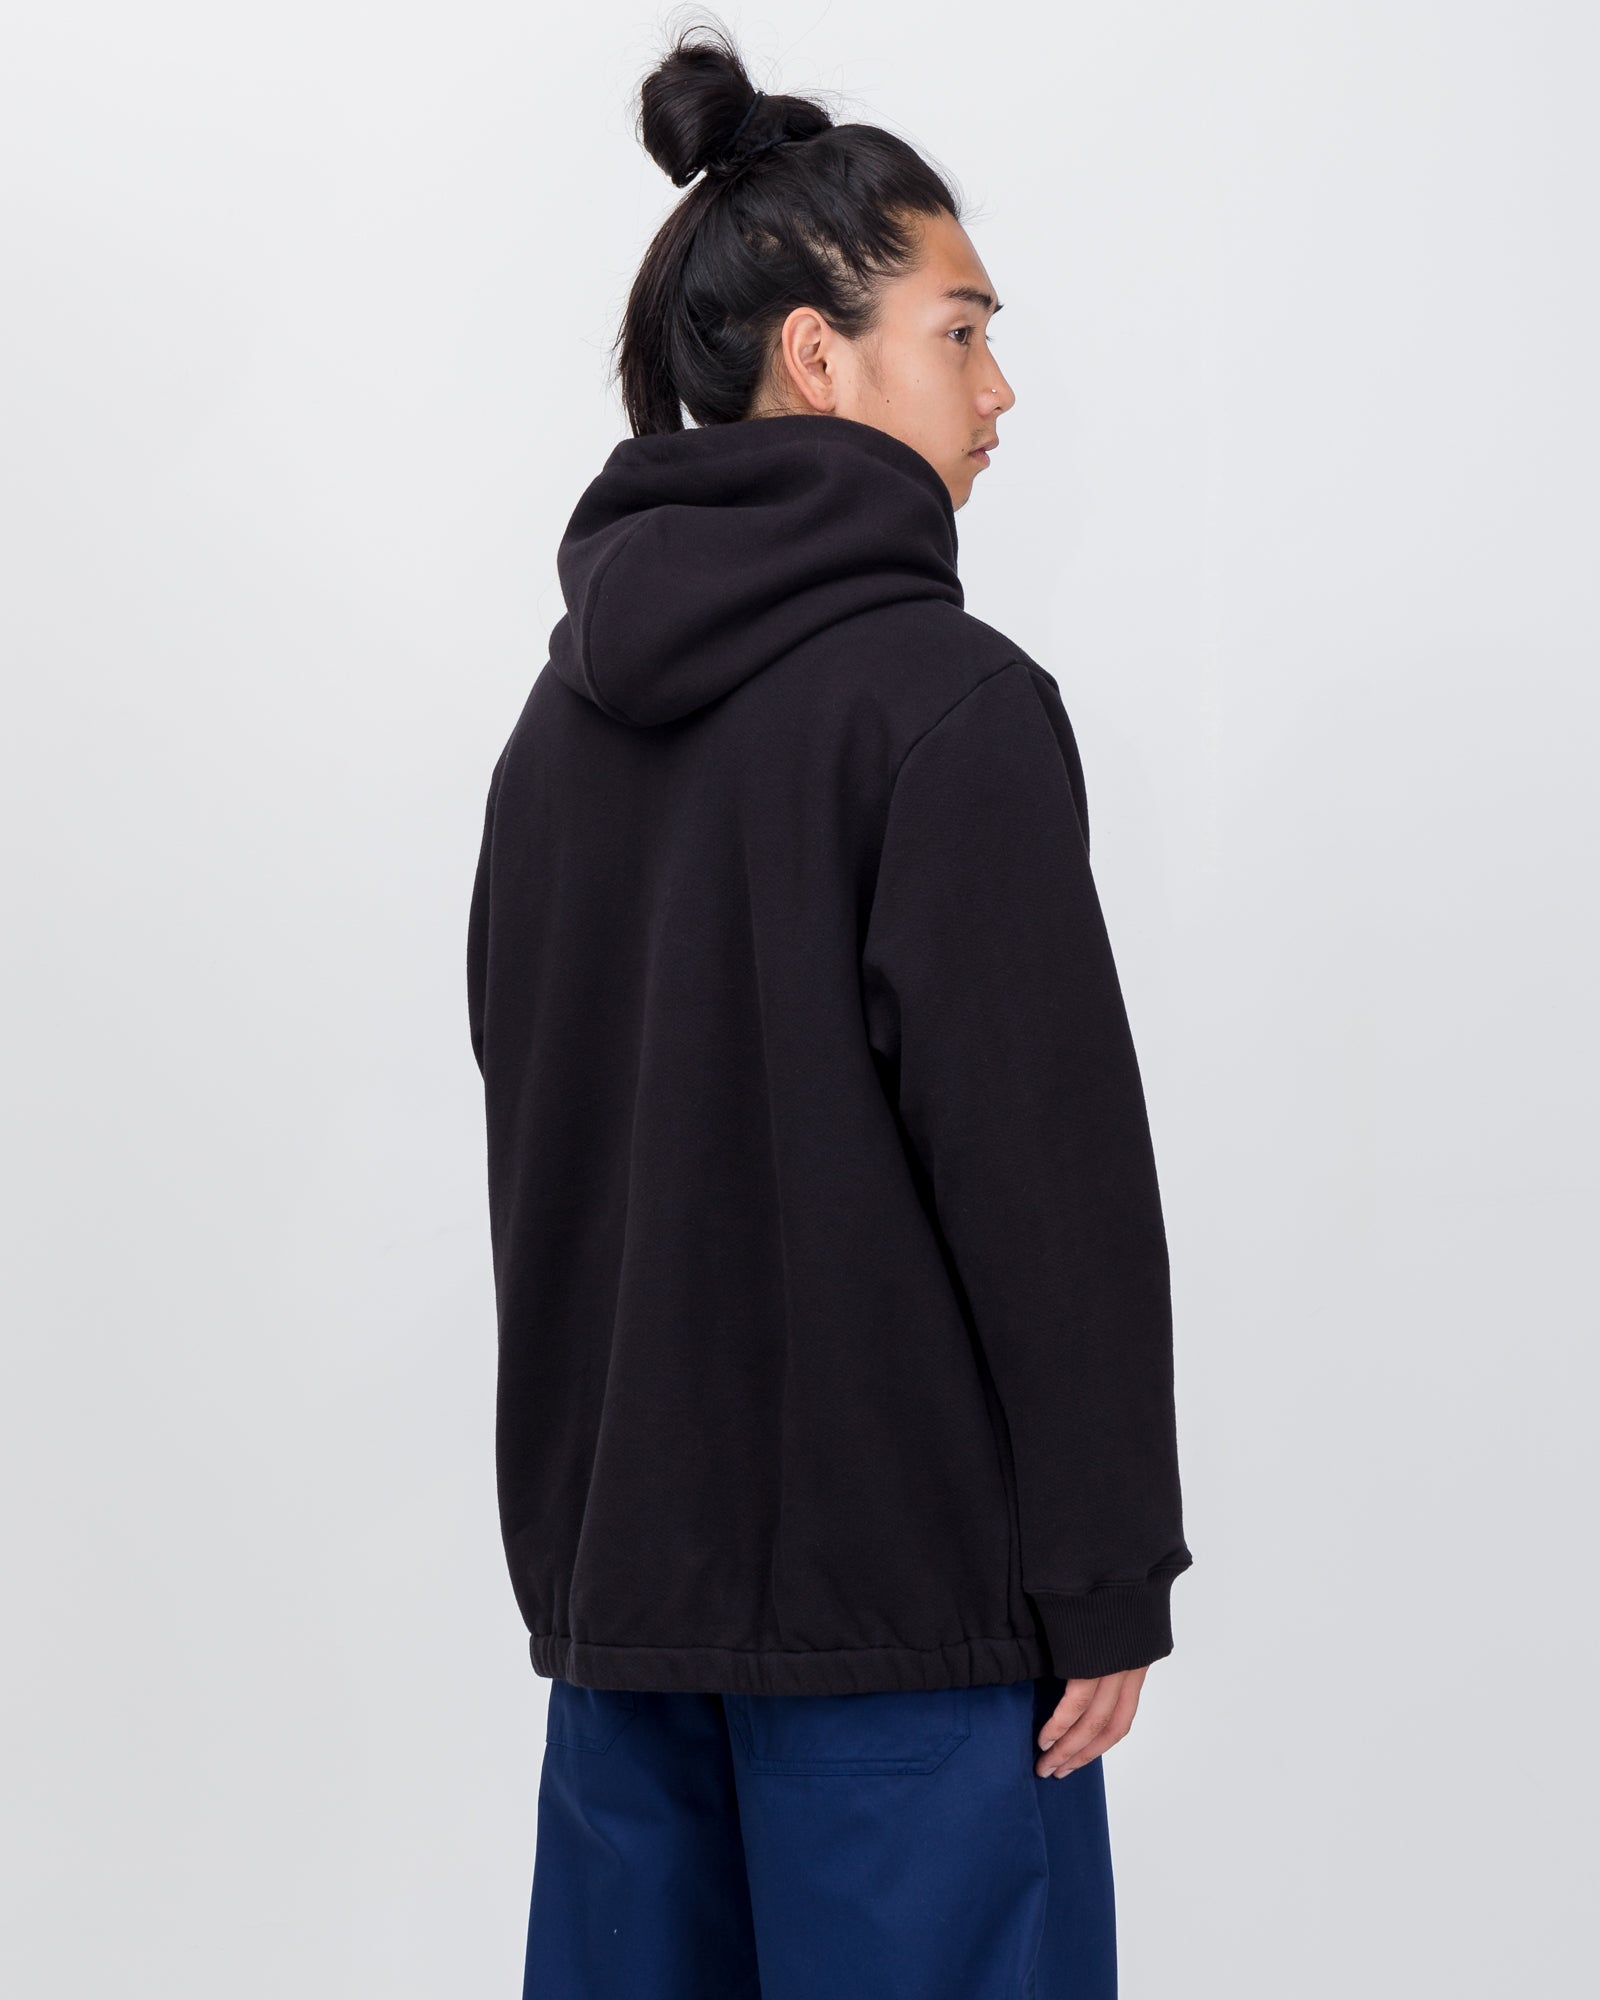 Falsetto Pullover Hoodie in Black